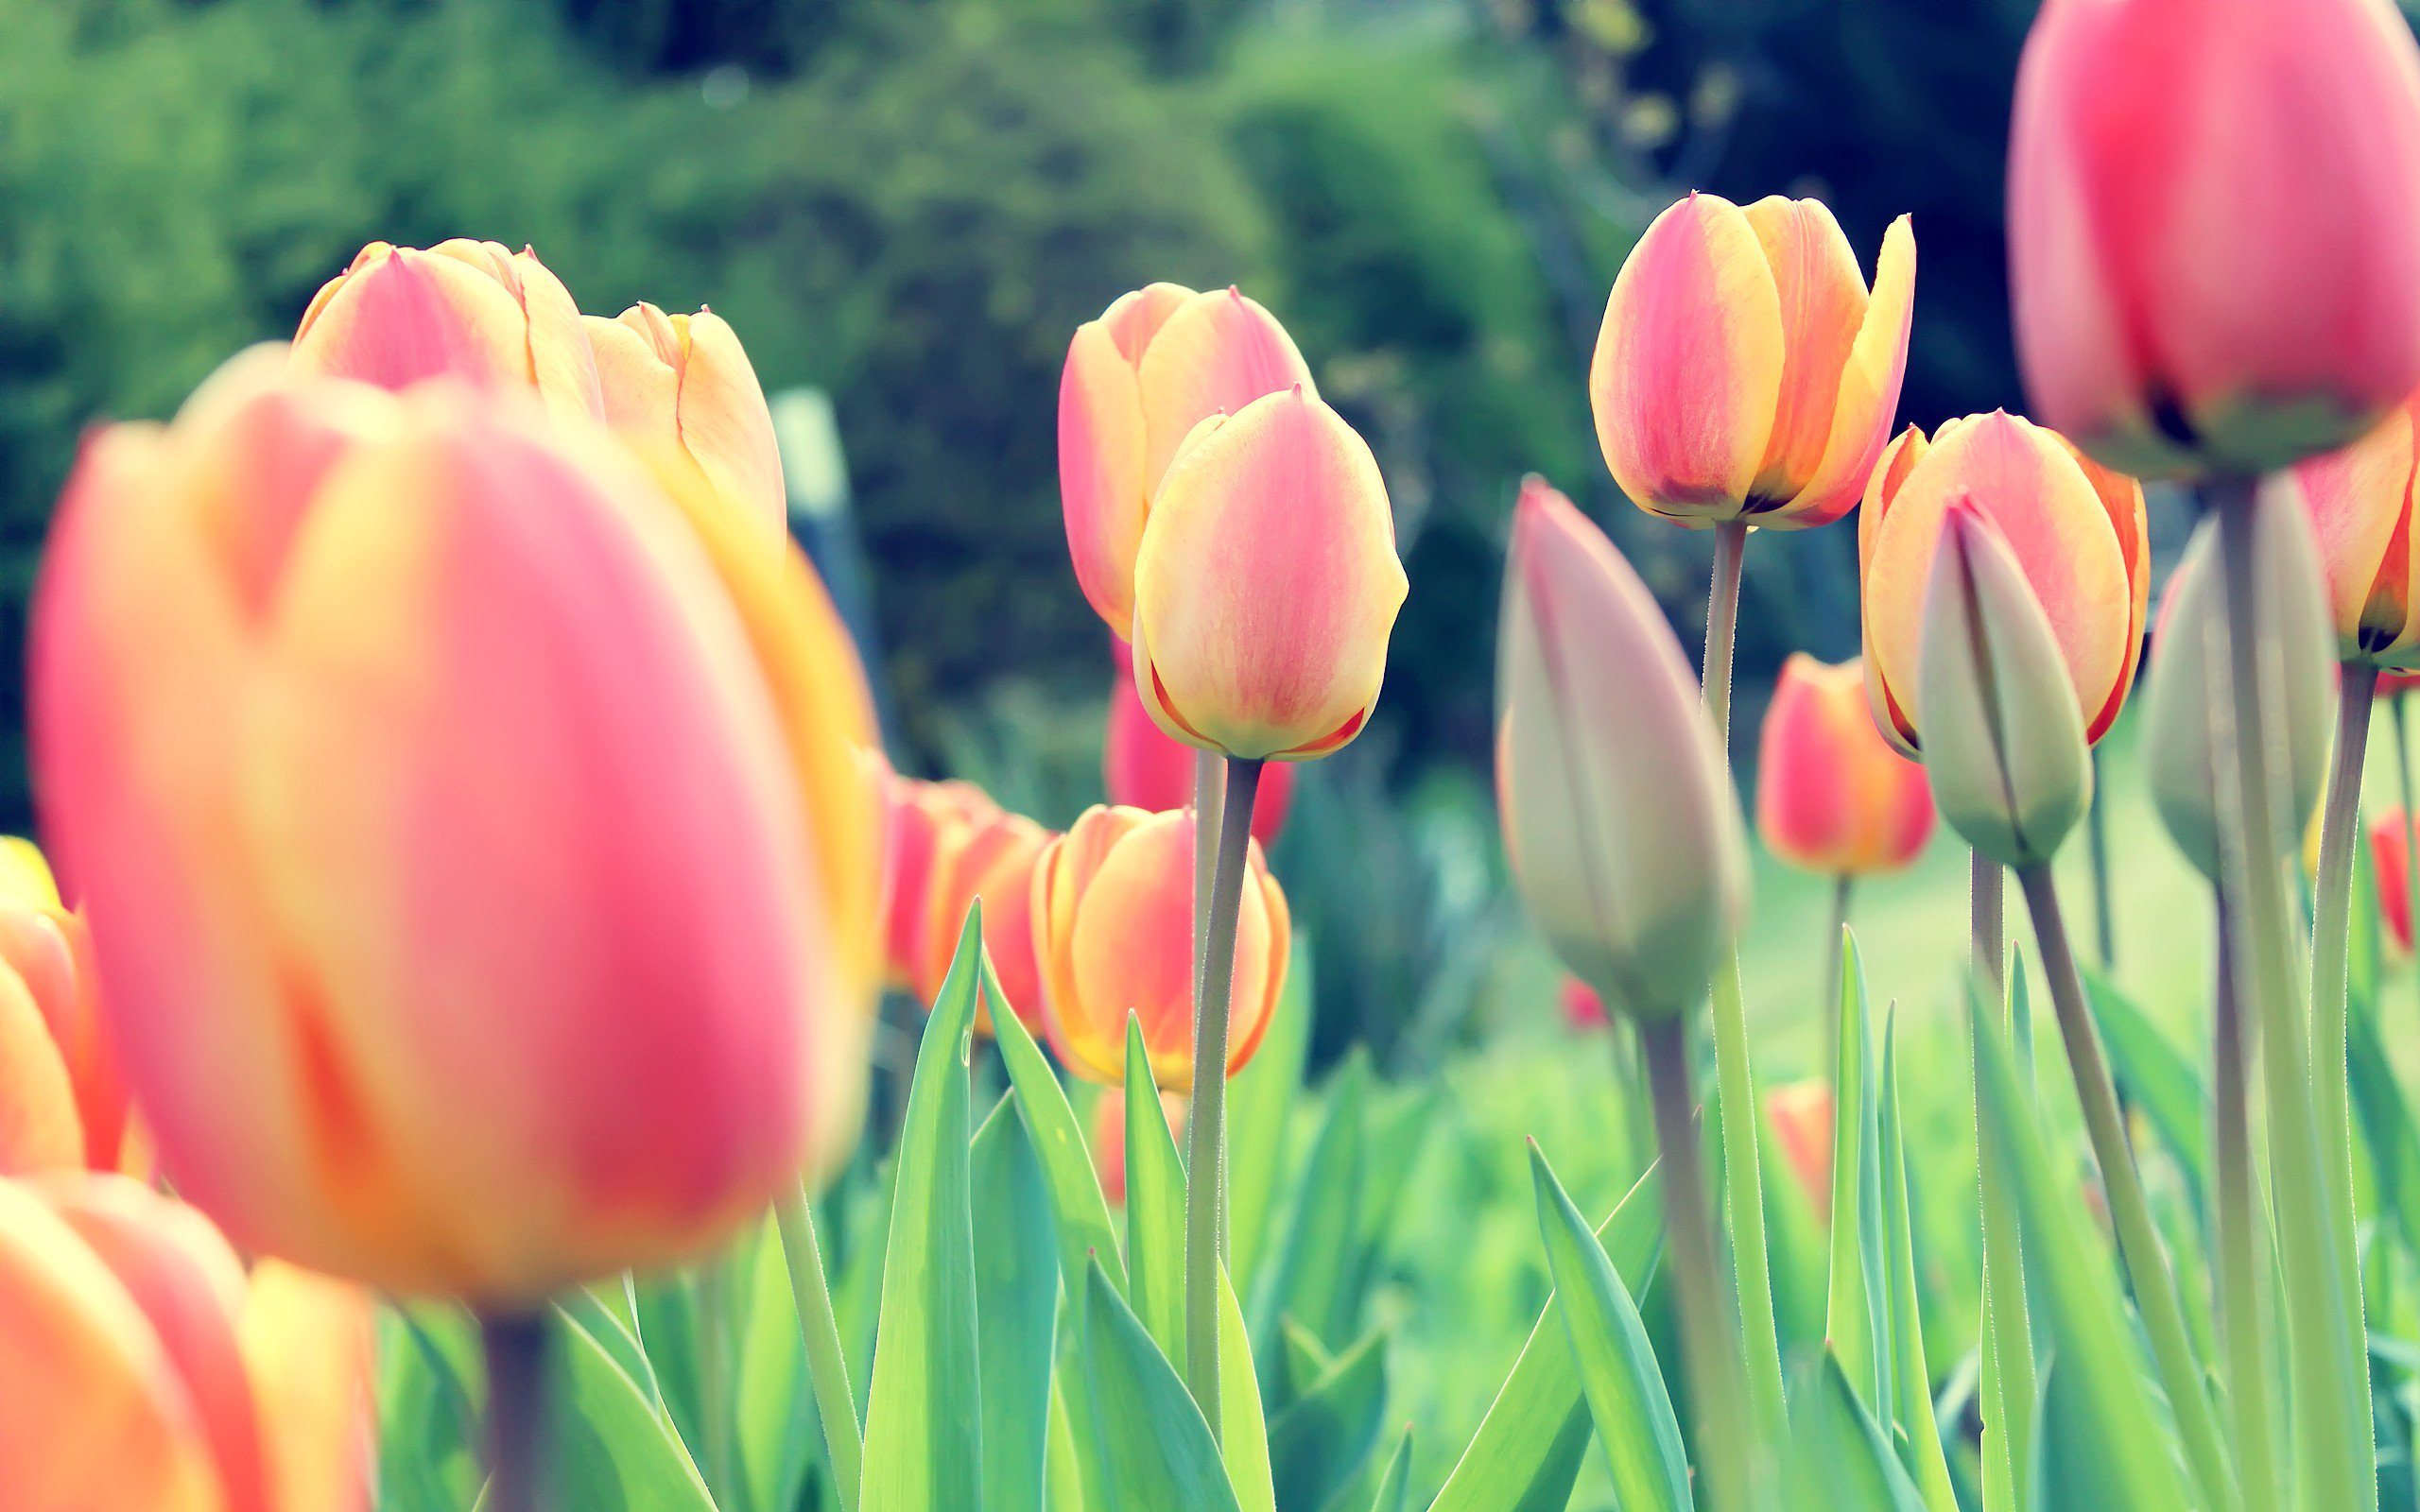 1920x1080 Easter Tulips Laptop Full Hd 1080p Hd 4k Wallpapers